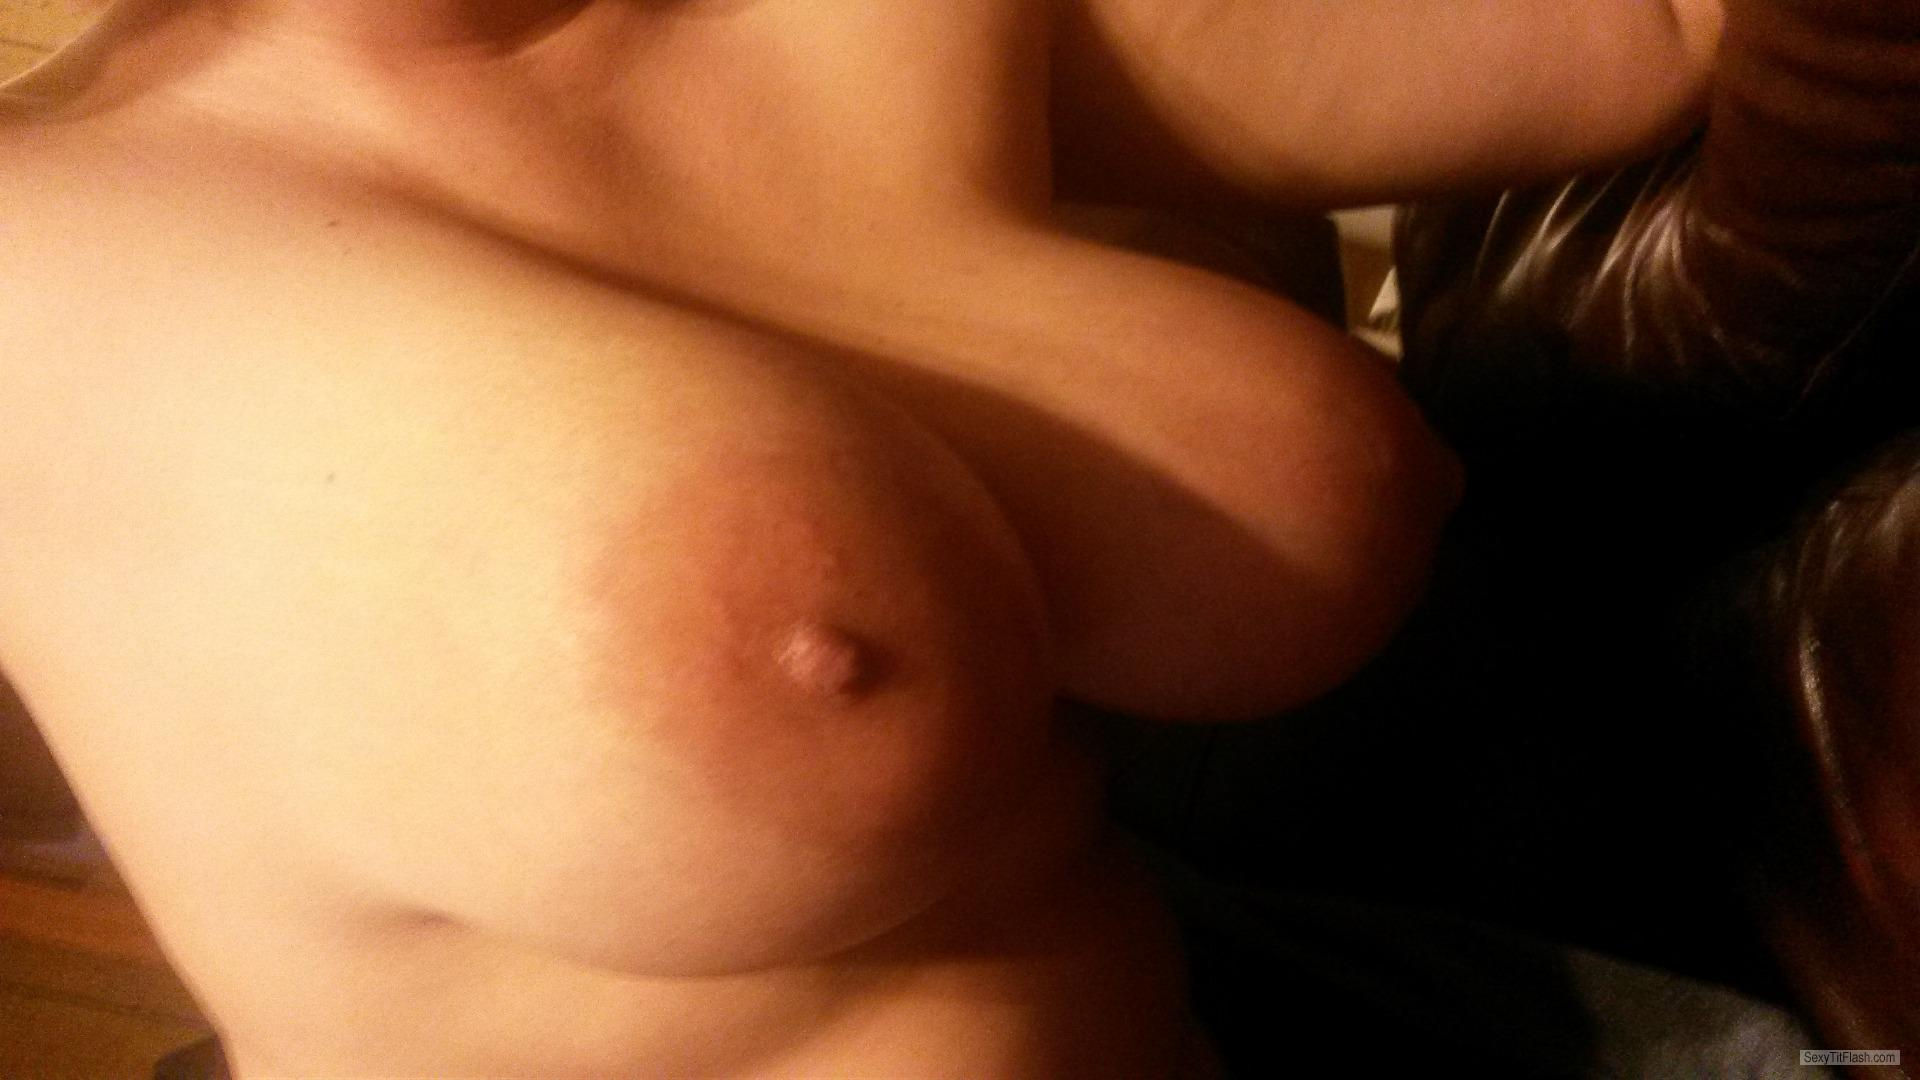 Tit Flash: My Very Big Tits - Home Grown from United Kingdom